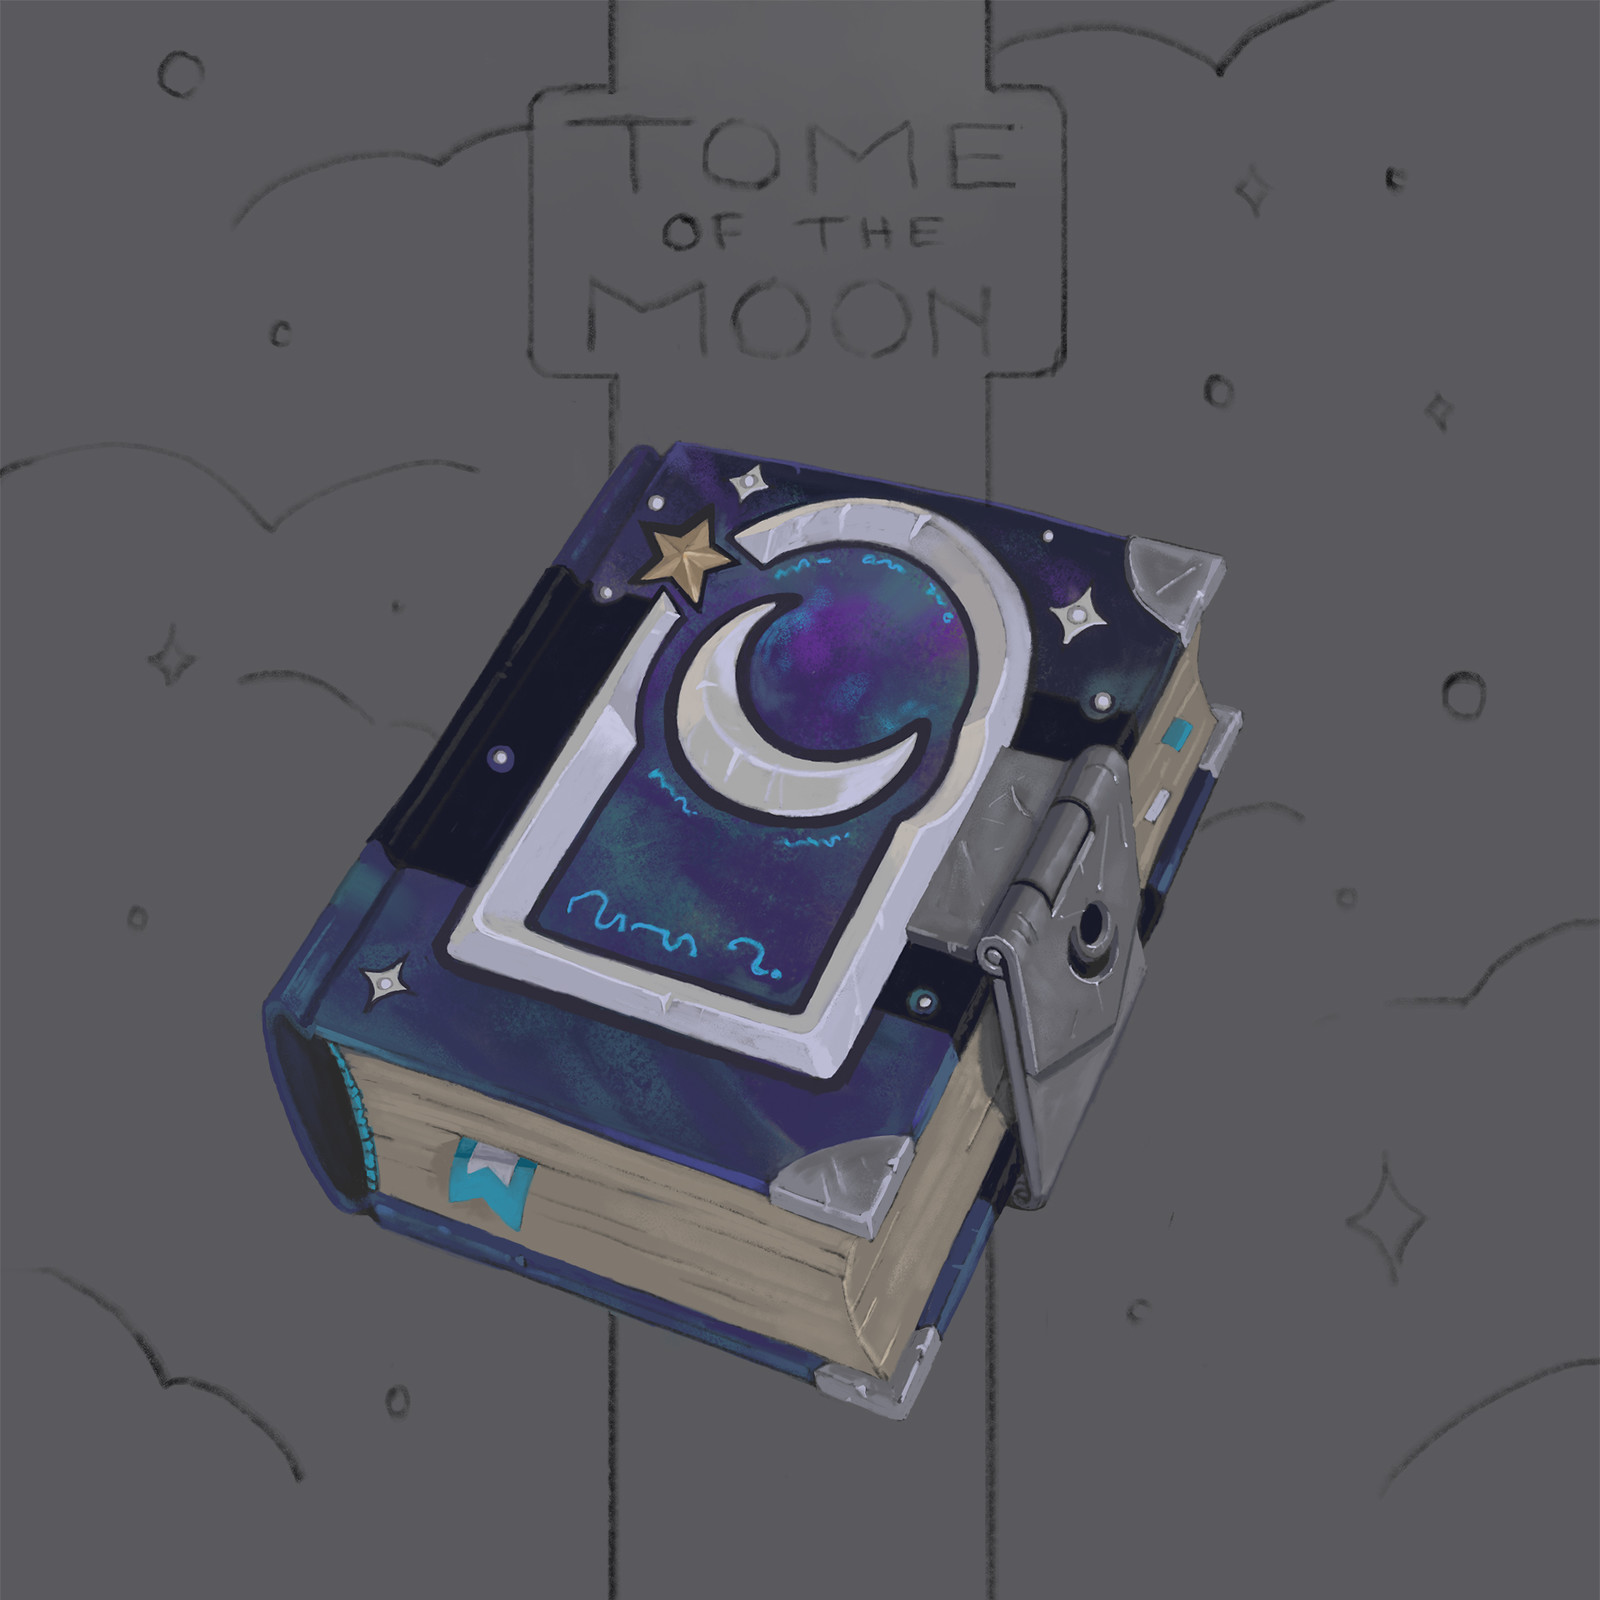 The tome of the moon.